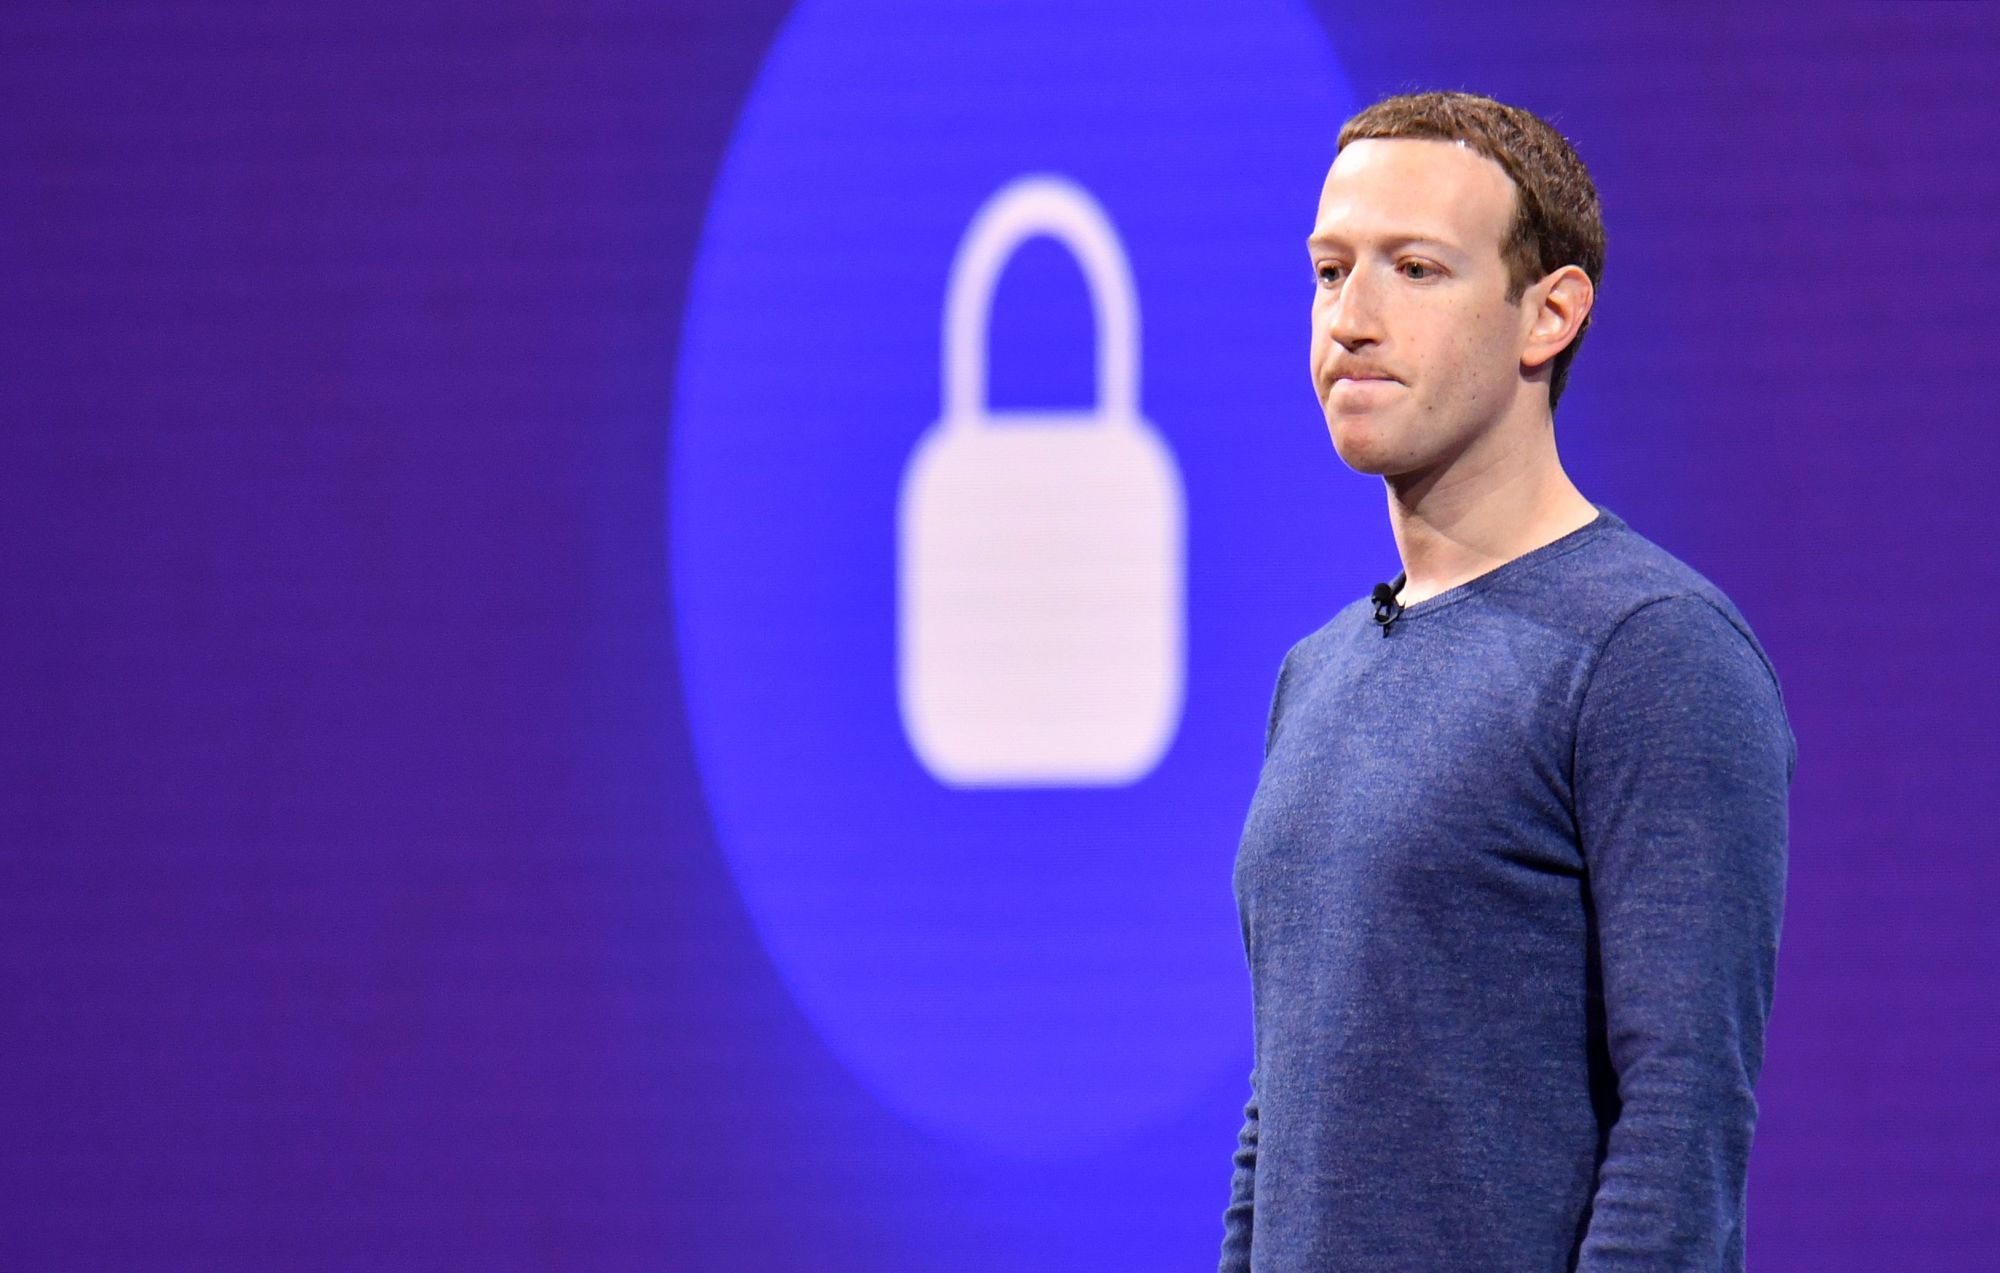 Facebook CEO Mark Zuckerberg speaks during the annual F8 summit at the San Jose McEnery Convention Center in San Jose, California on May 1, 2018. (Josh Edelson/AFP/Getty Images)